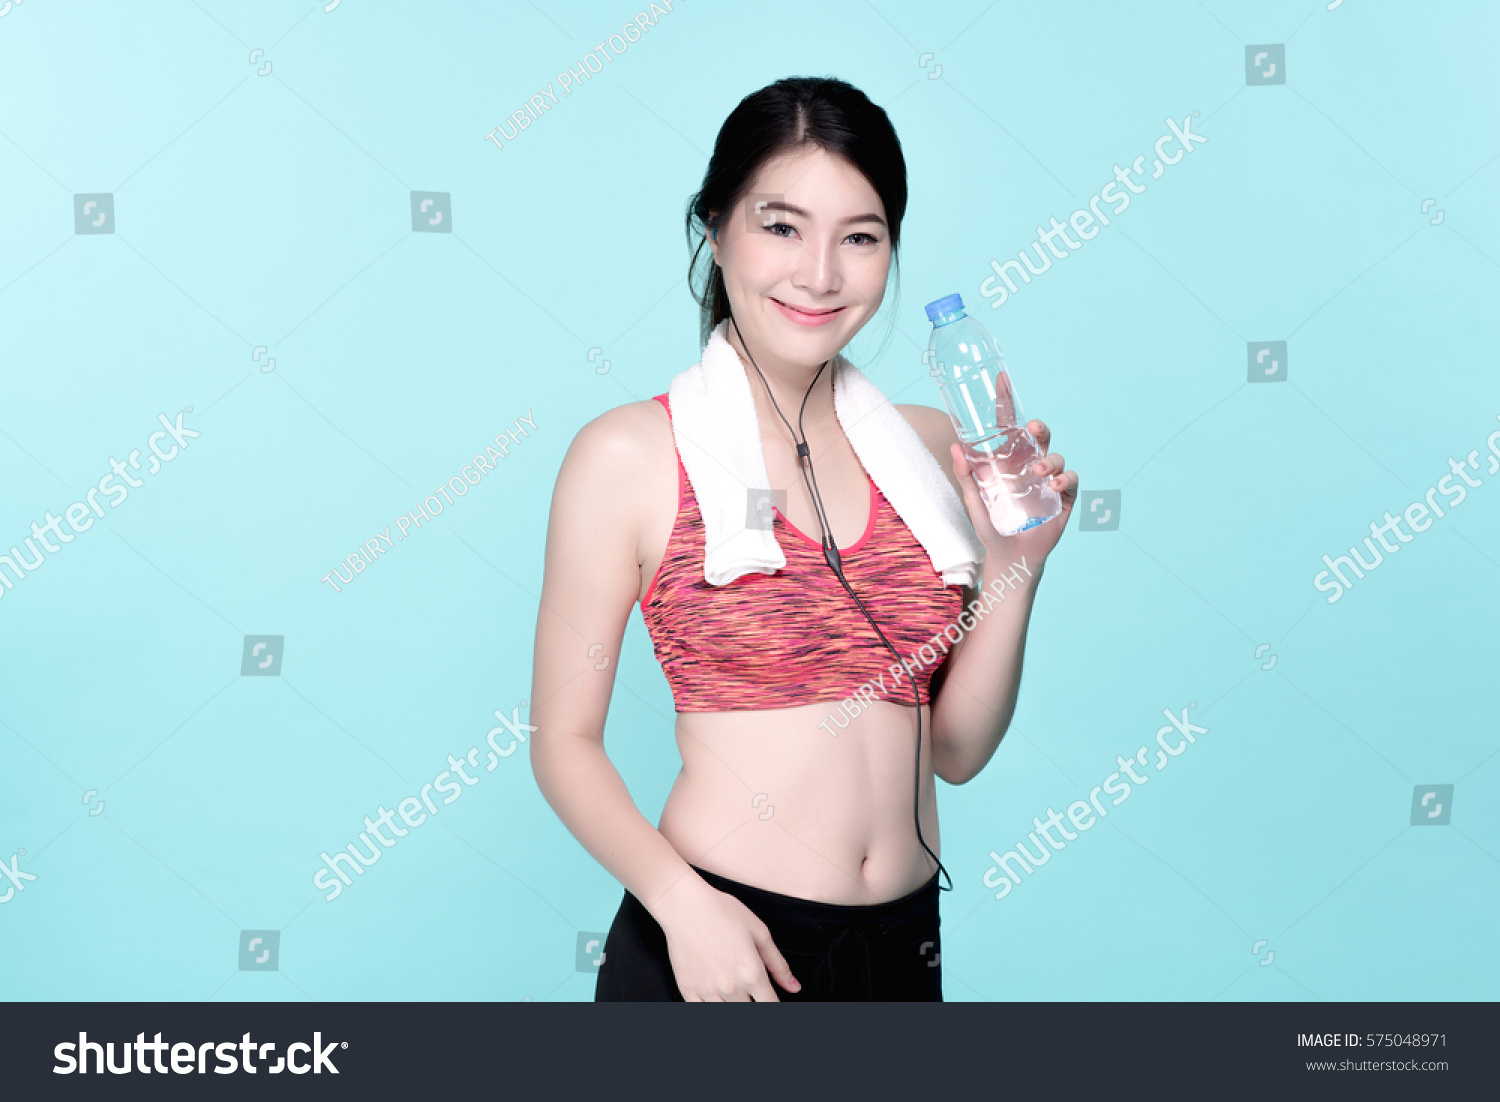 82f4c17ac5 Asian Woman Sport Workout and Exercise Concept. Slim body girl relax with  earphone and drinking